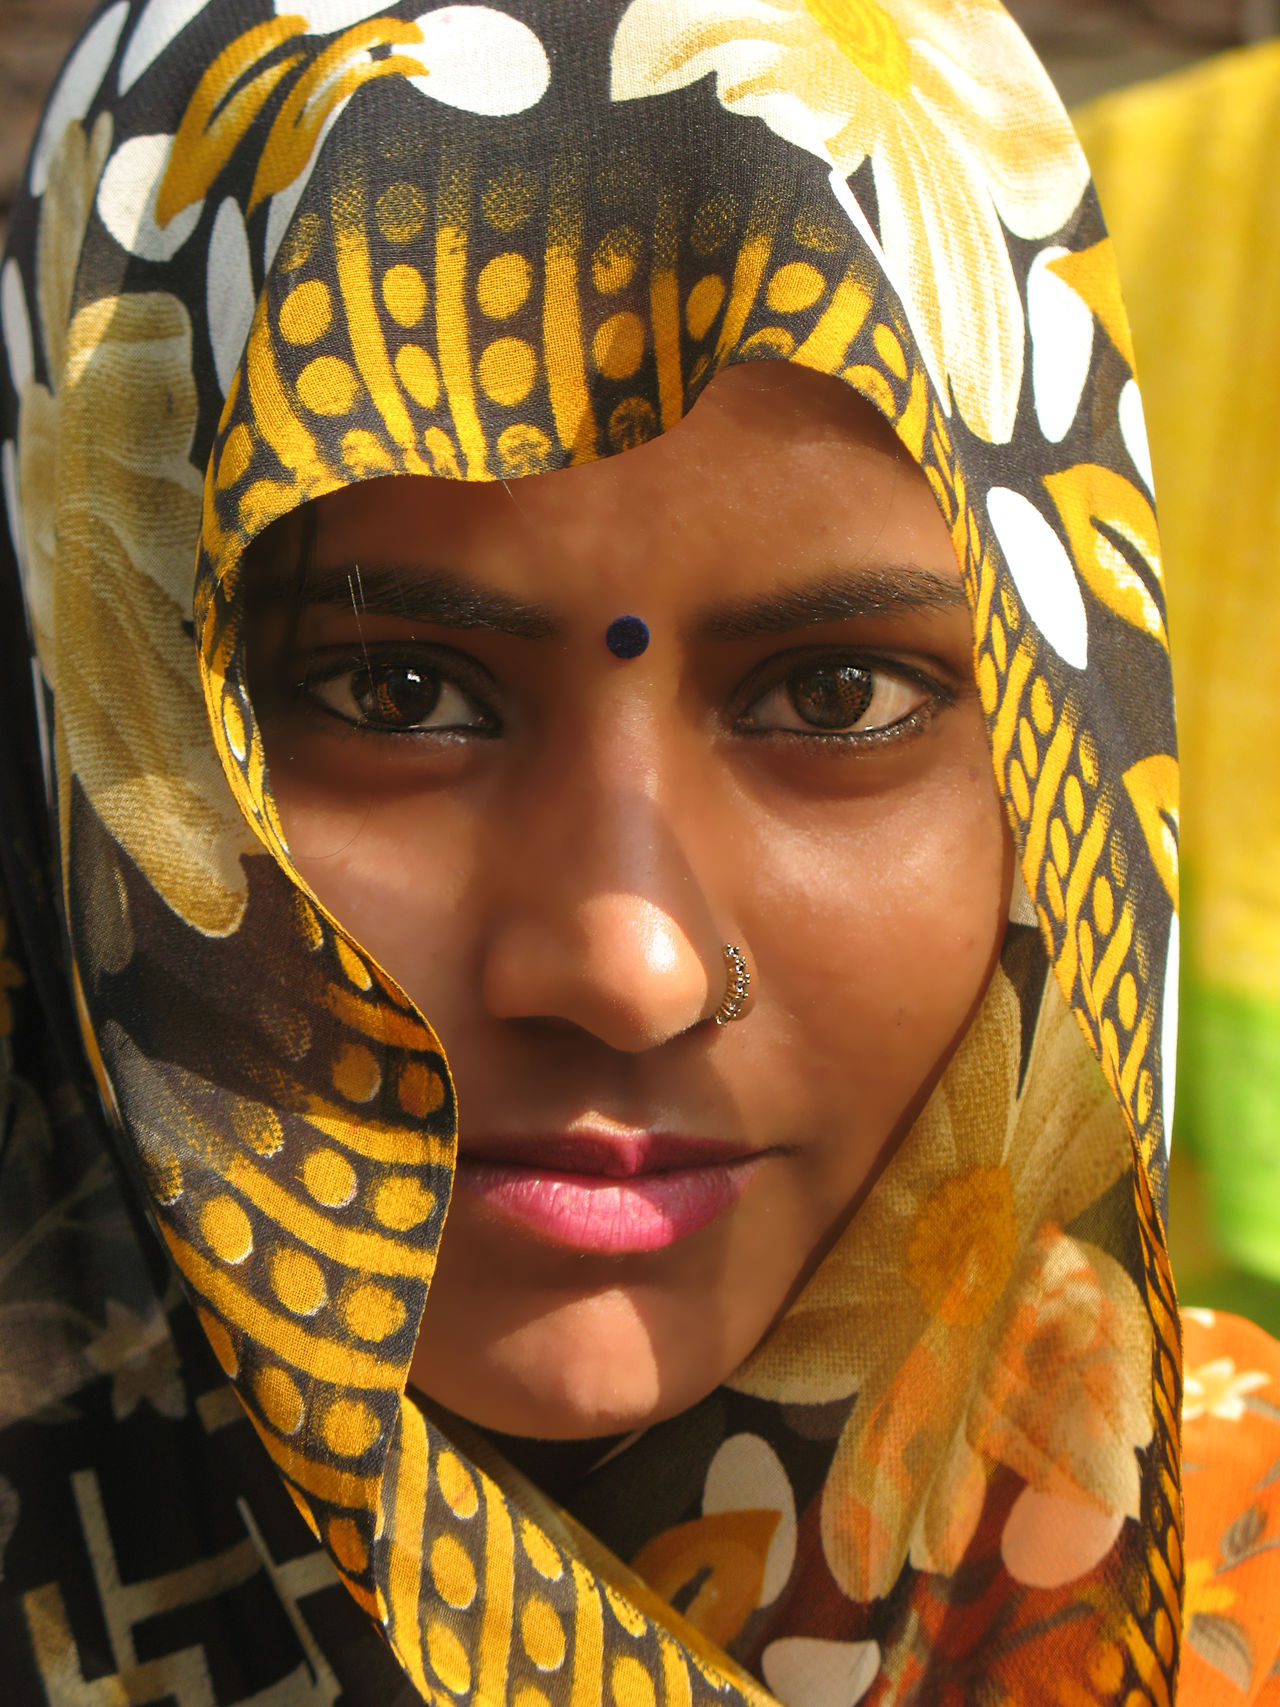 Rajastan village woman Bindi Close-up Headshot India Indian Indian Woman Nose Piercing One Person Outdoors People Portrait Sari Traditional Clothing Yellow